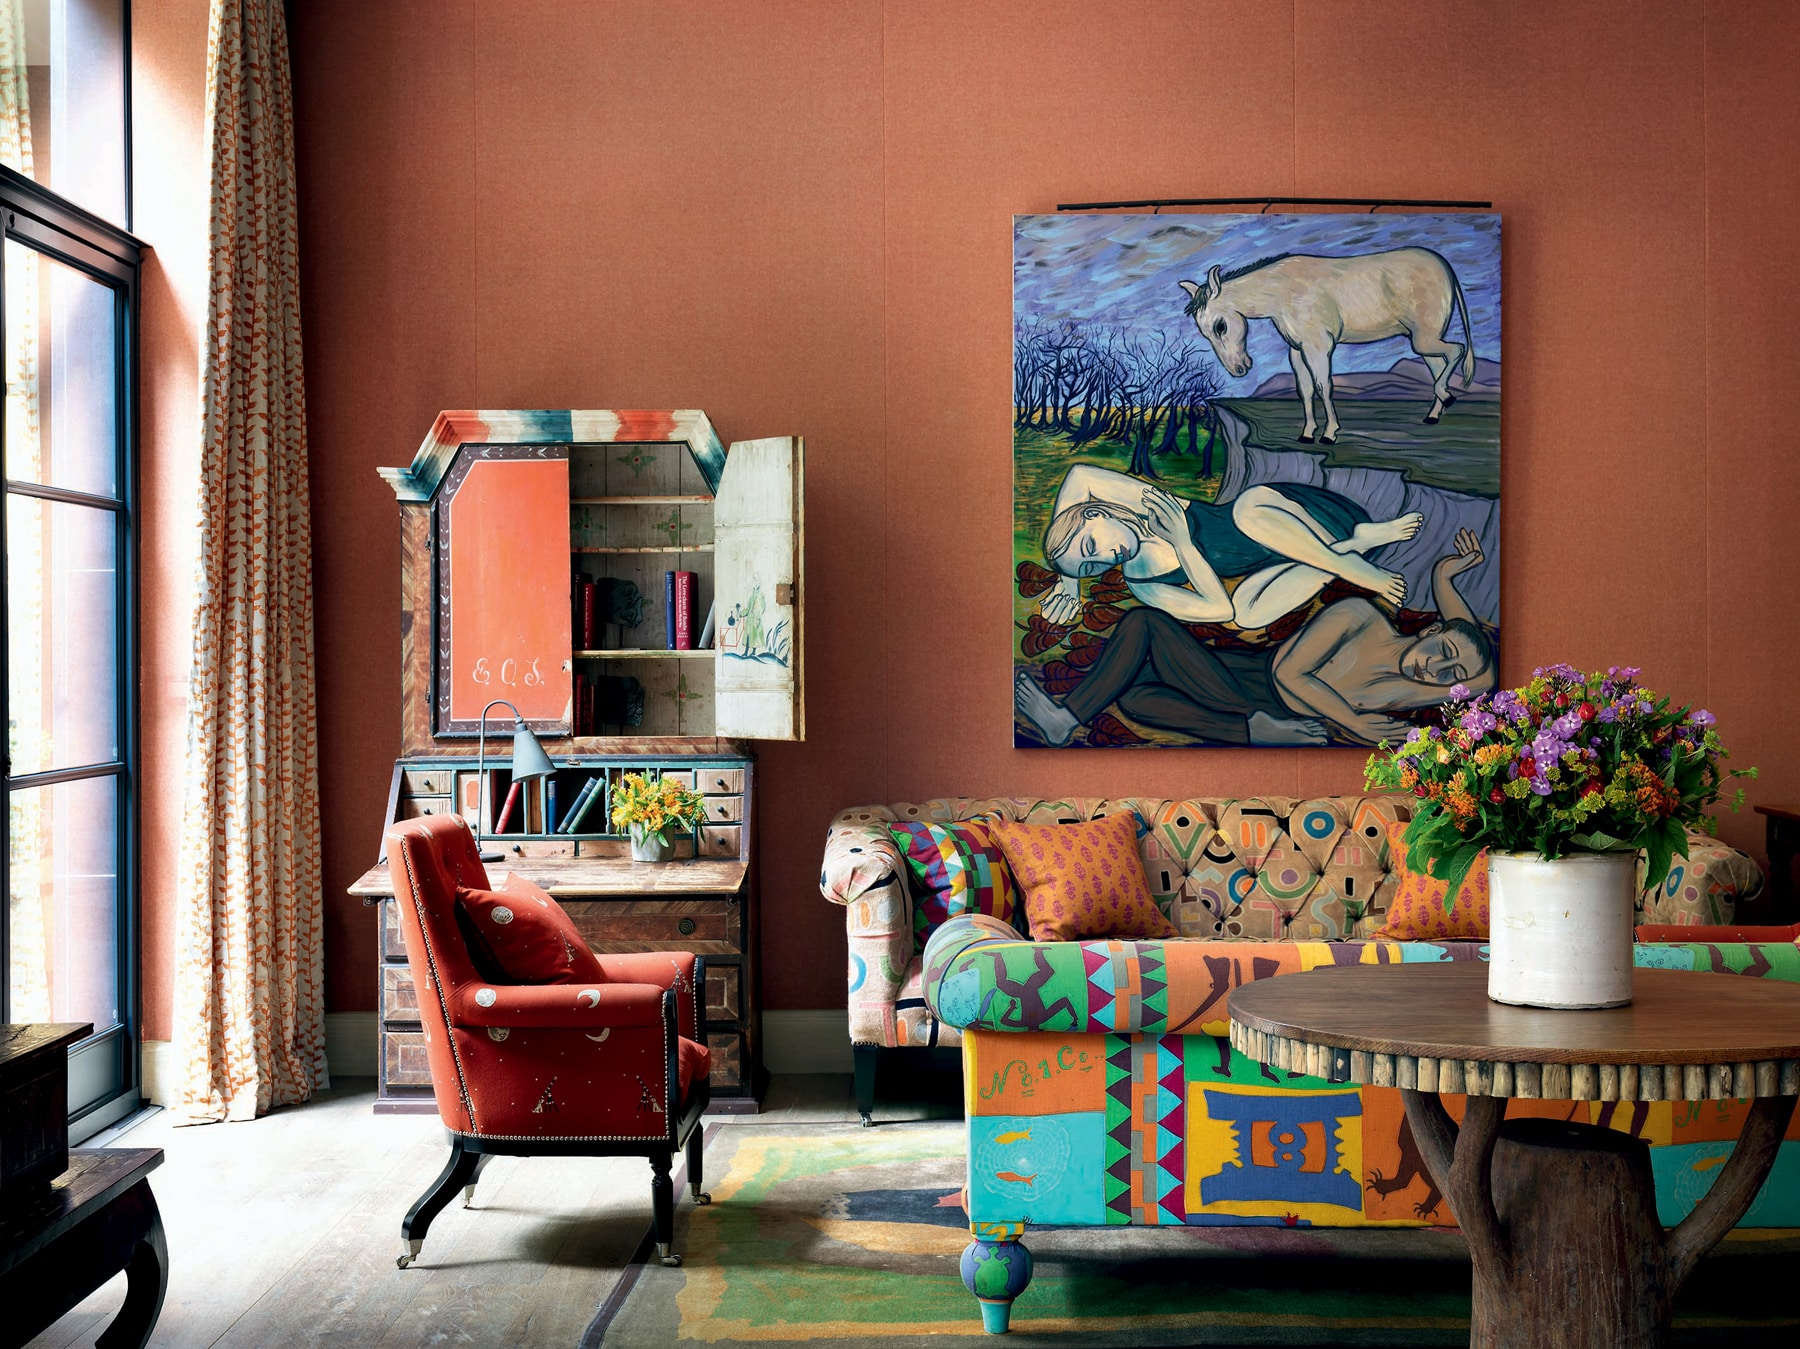 Living room space with wooden table, mismatched printed couches and armchair